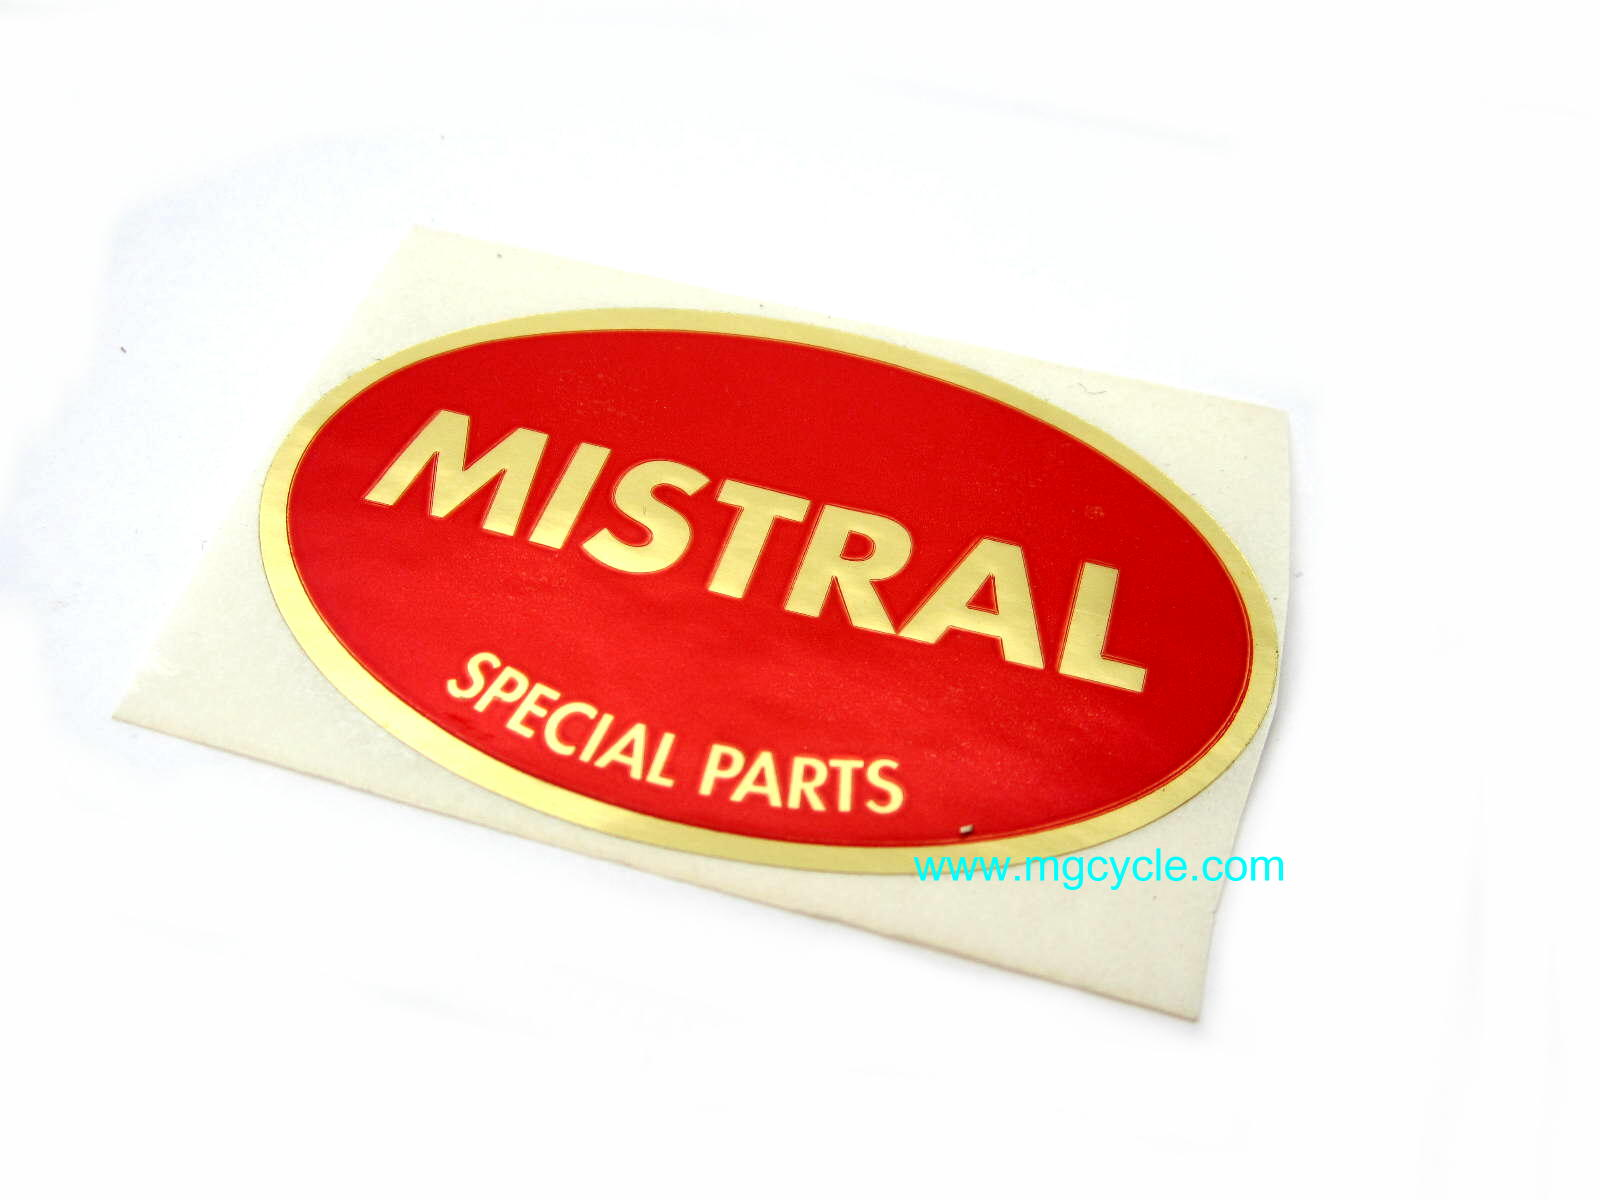 Mistral sticker, metal foil